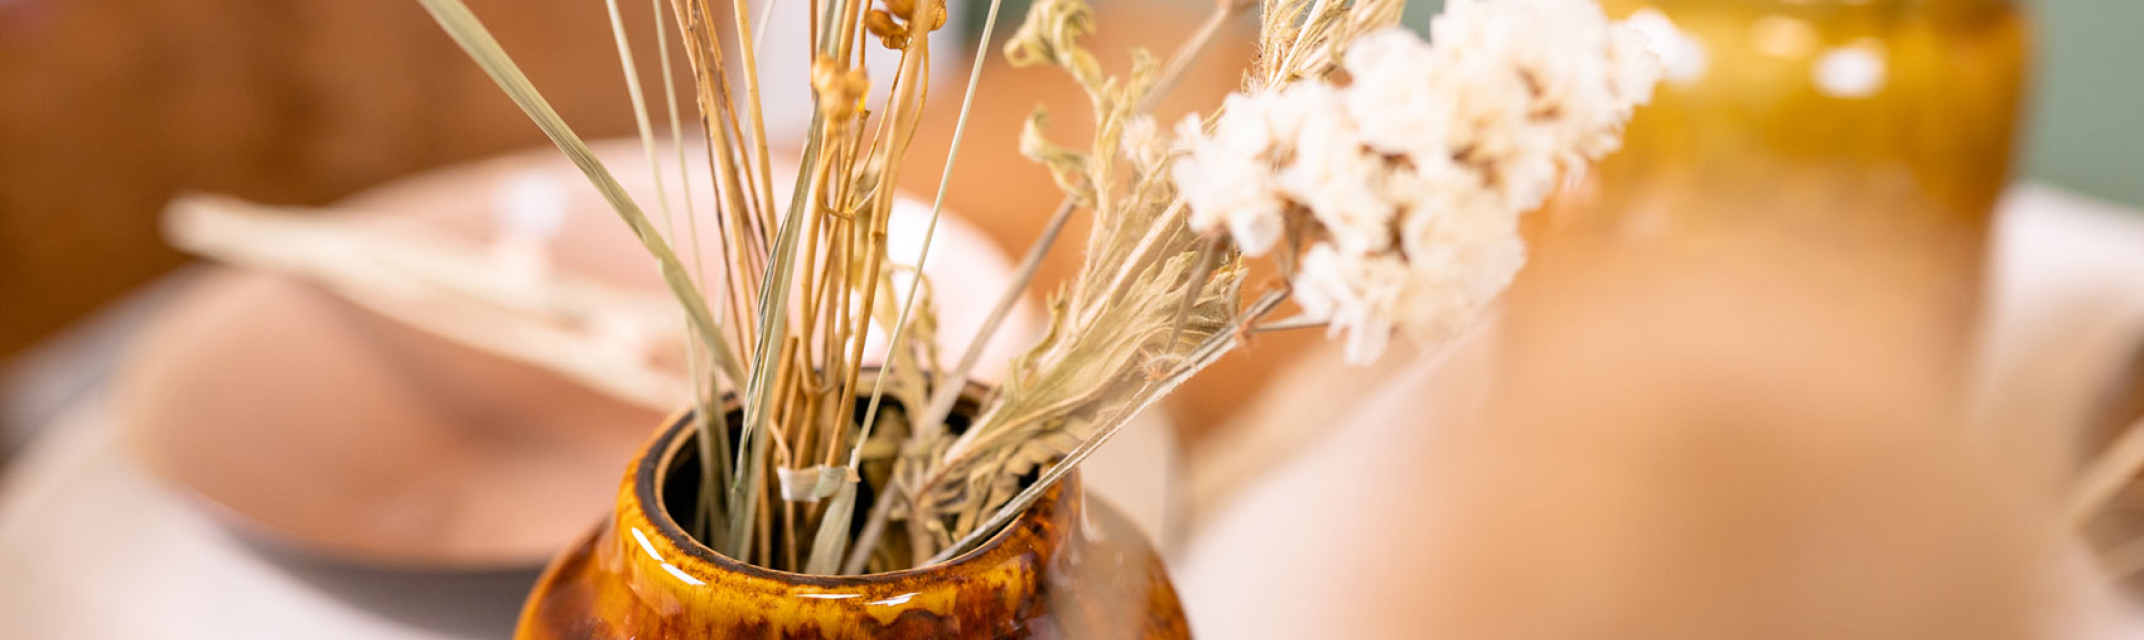 Vases for dried flowers